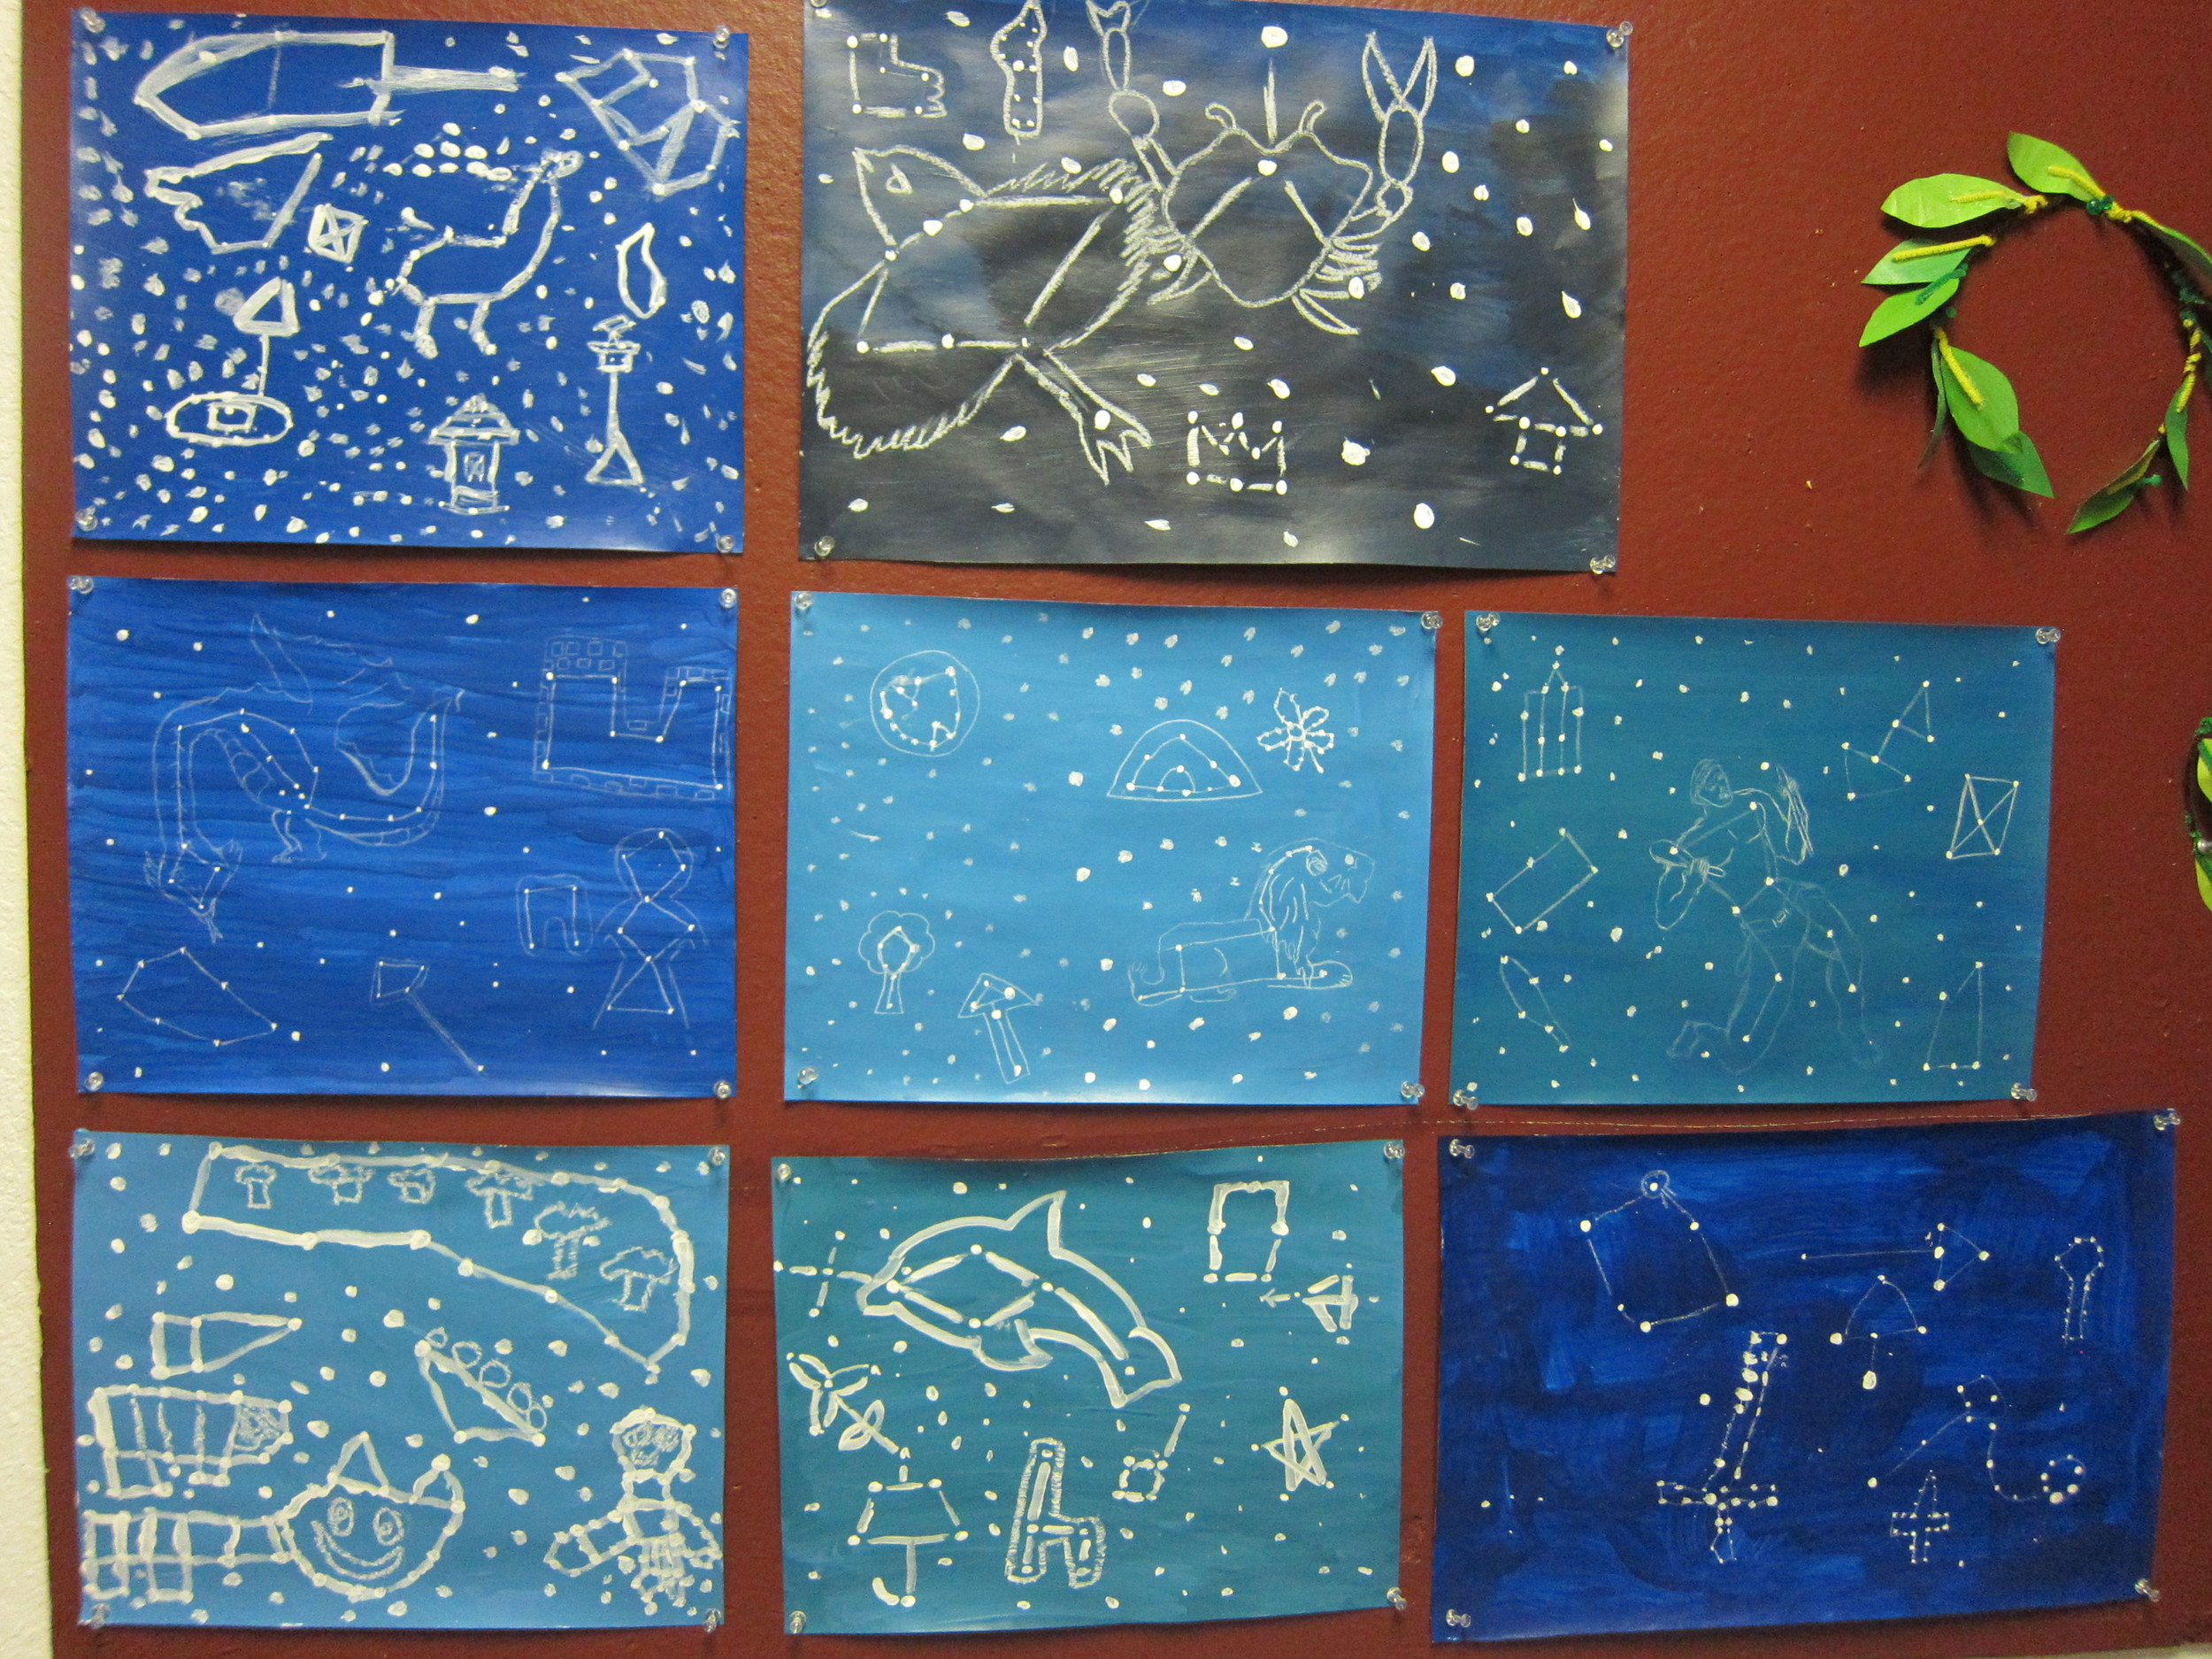 Ms. Rosaline's 3-5th graders design their own constellations and laurel leaves (September 2015)